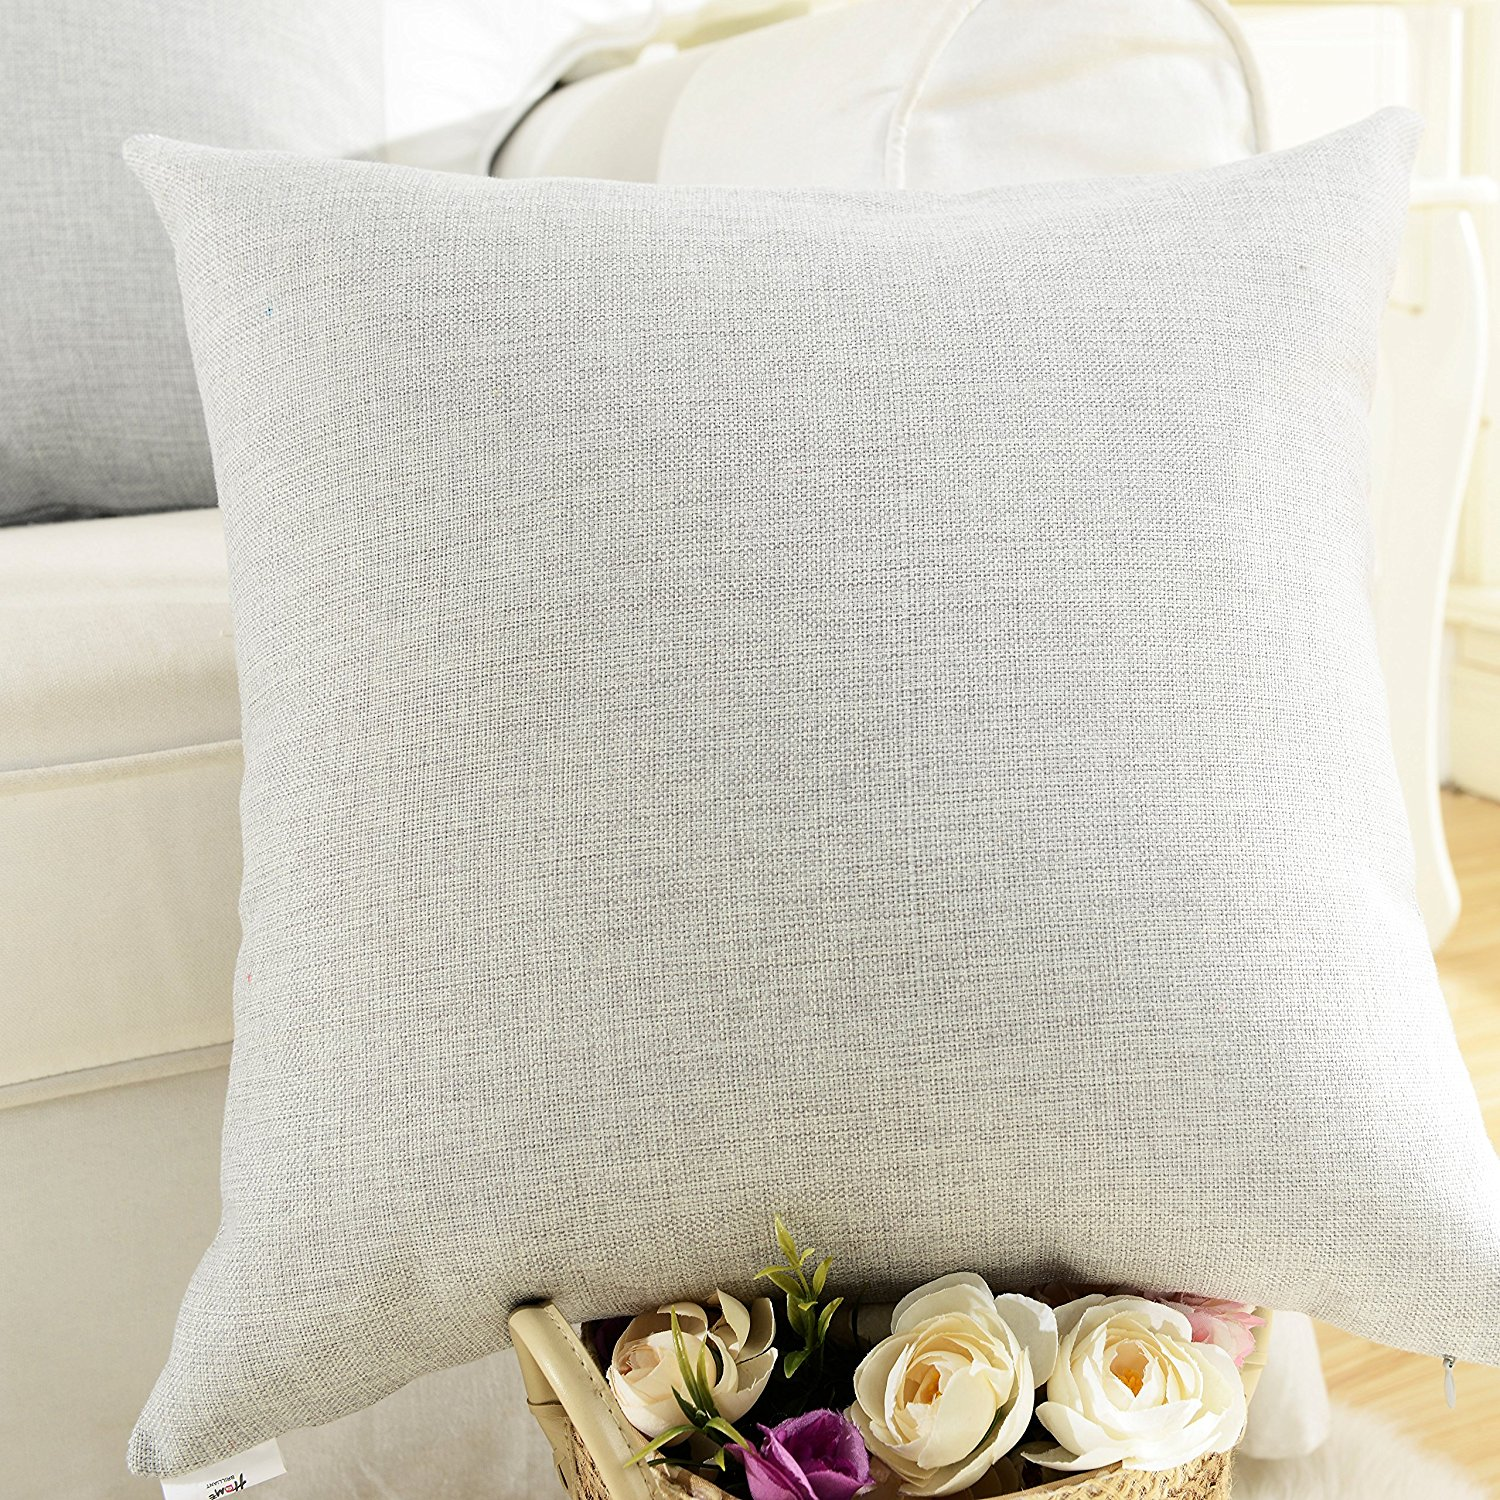 Best Throw Pillow Filling : Throw Pillow Inserts Target. Solid Color Pillows. Stripe Linen Throw Pillow Color. 14 X 24 ...